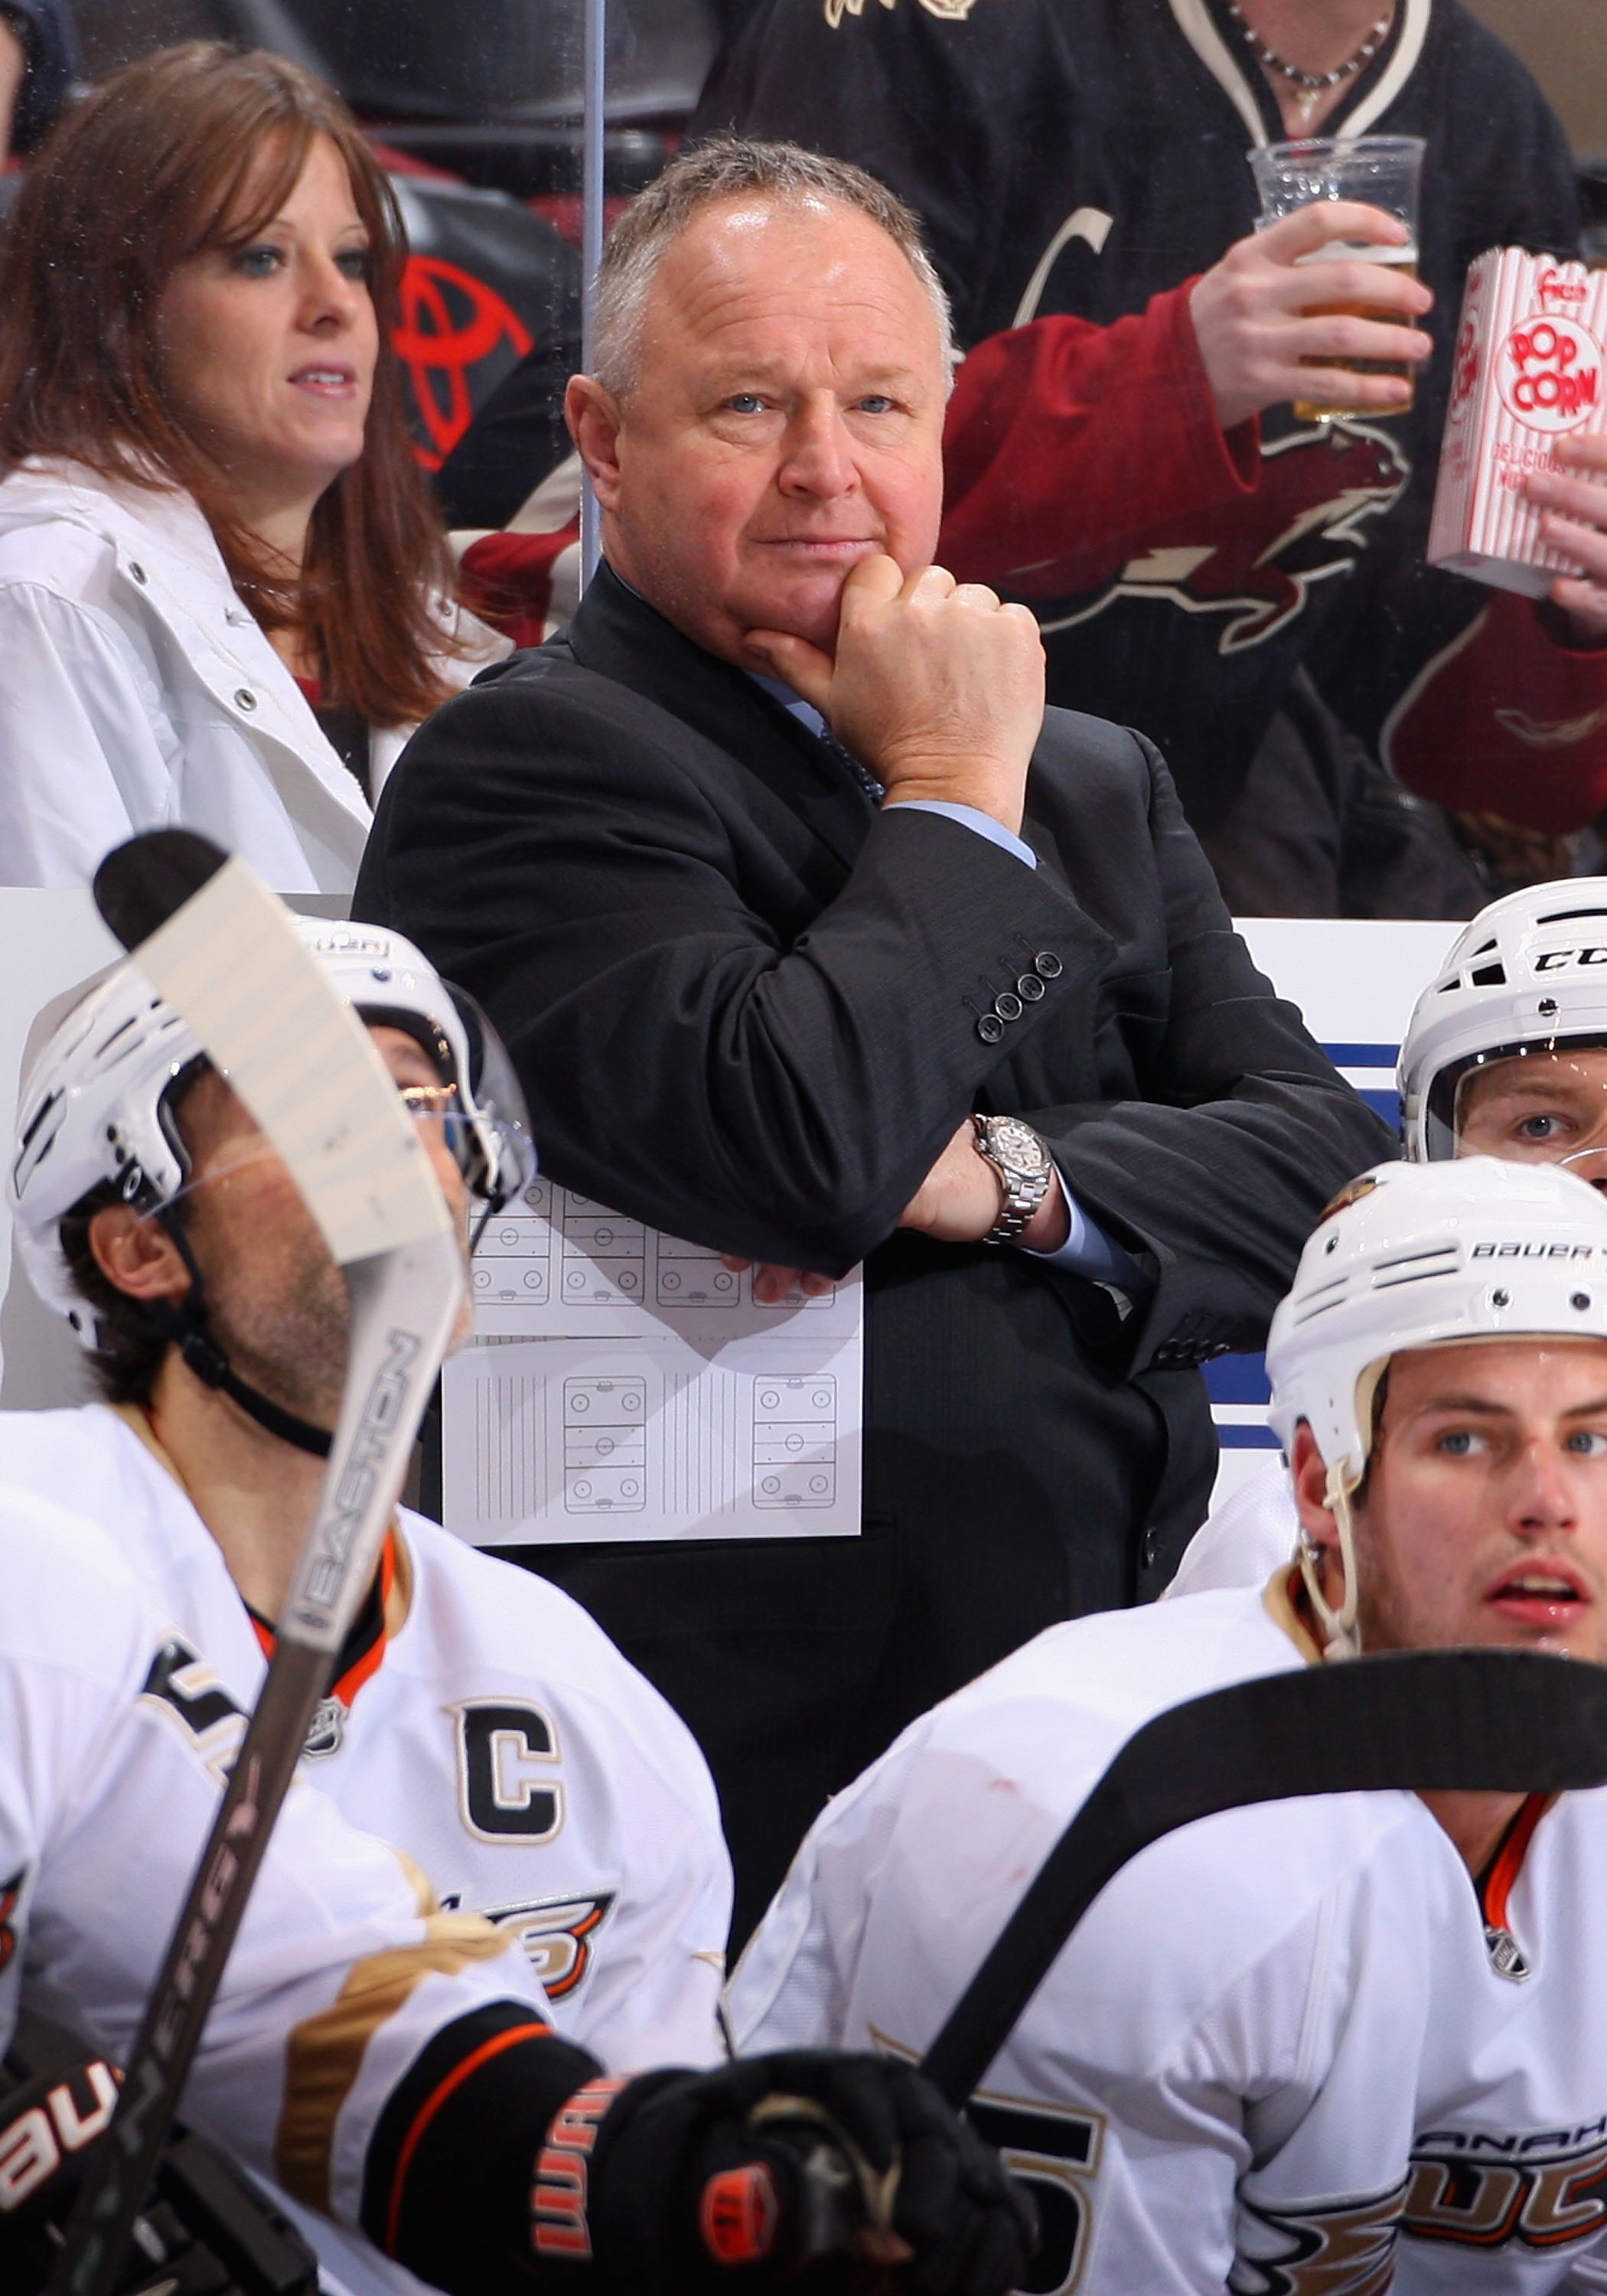 fa81e1b2214 Randy Carlyle was named the Head Coach of the Anaheim Ducks on August 1,  2005